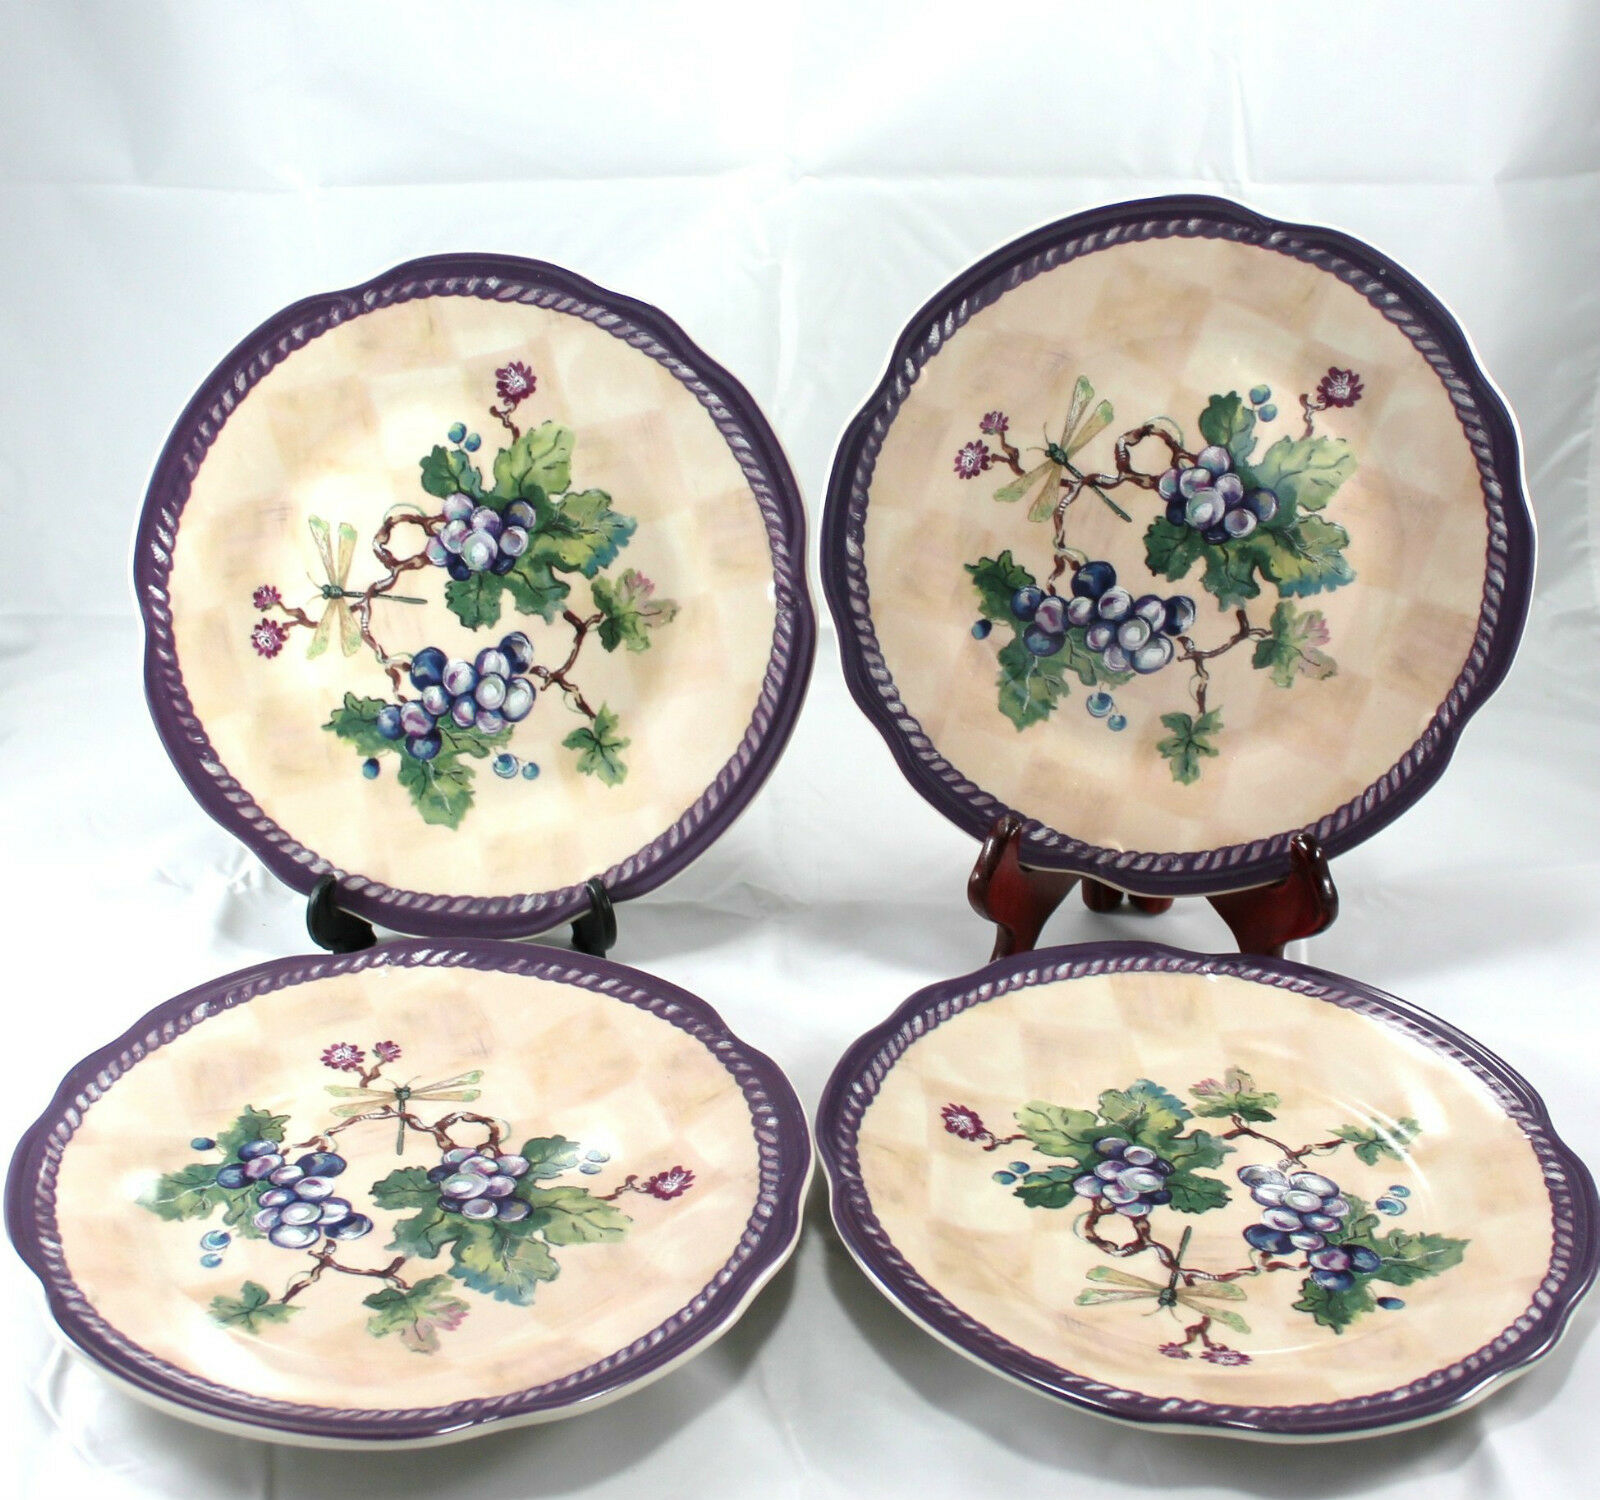 Tracy Porter Plate Dream Delicious Claret Collection Grapes Leaves Dragonfly 4Pc